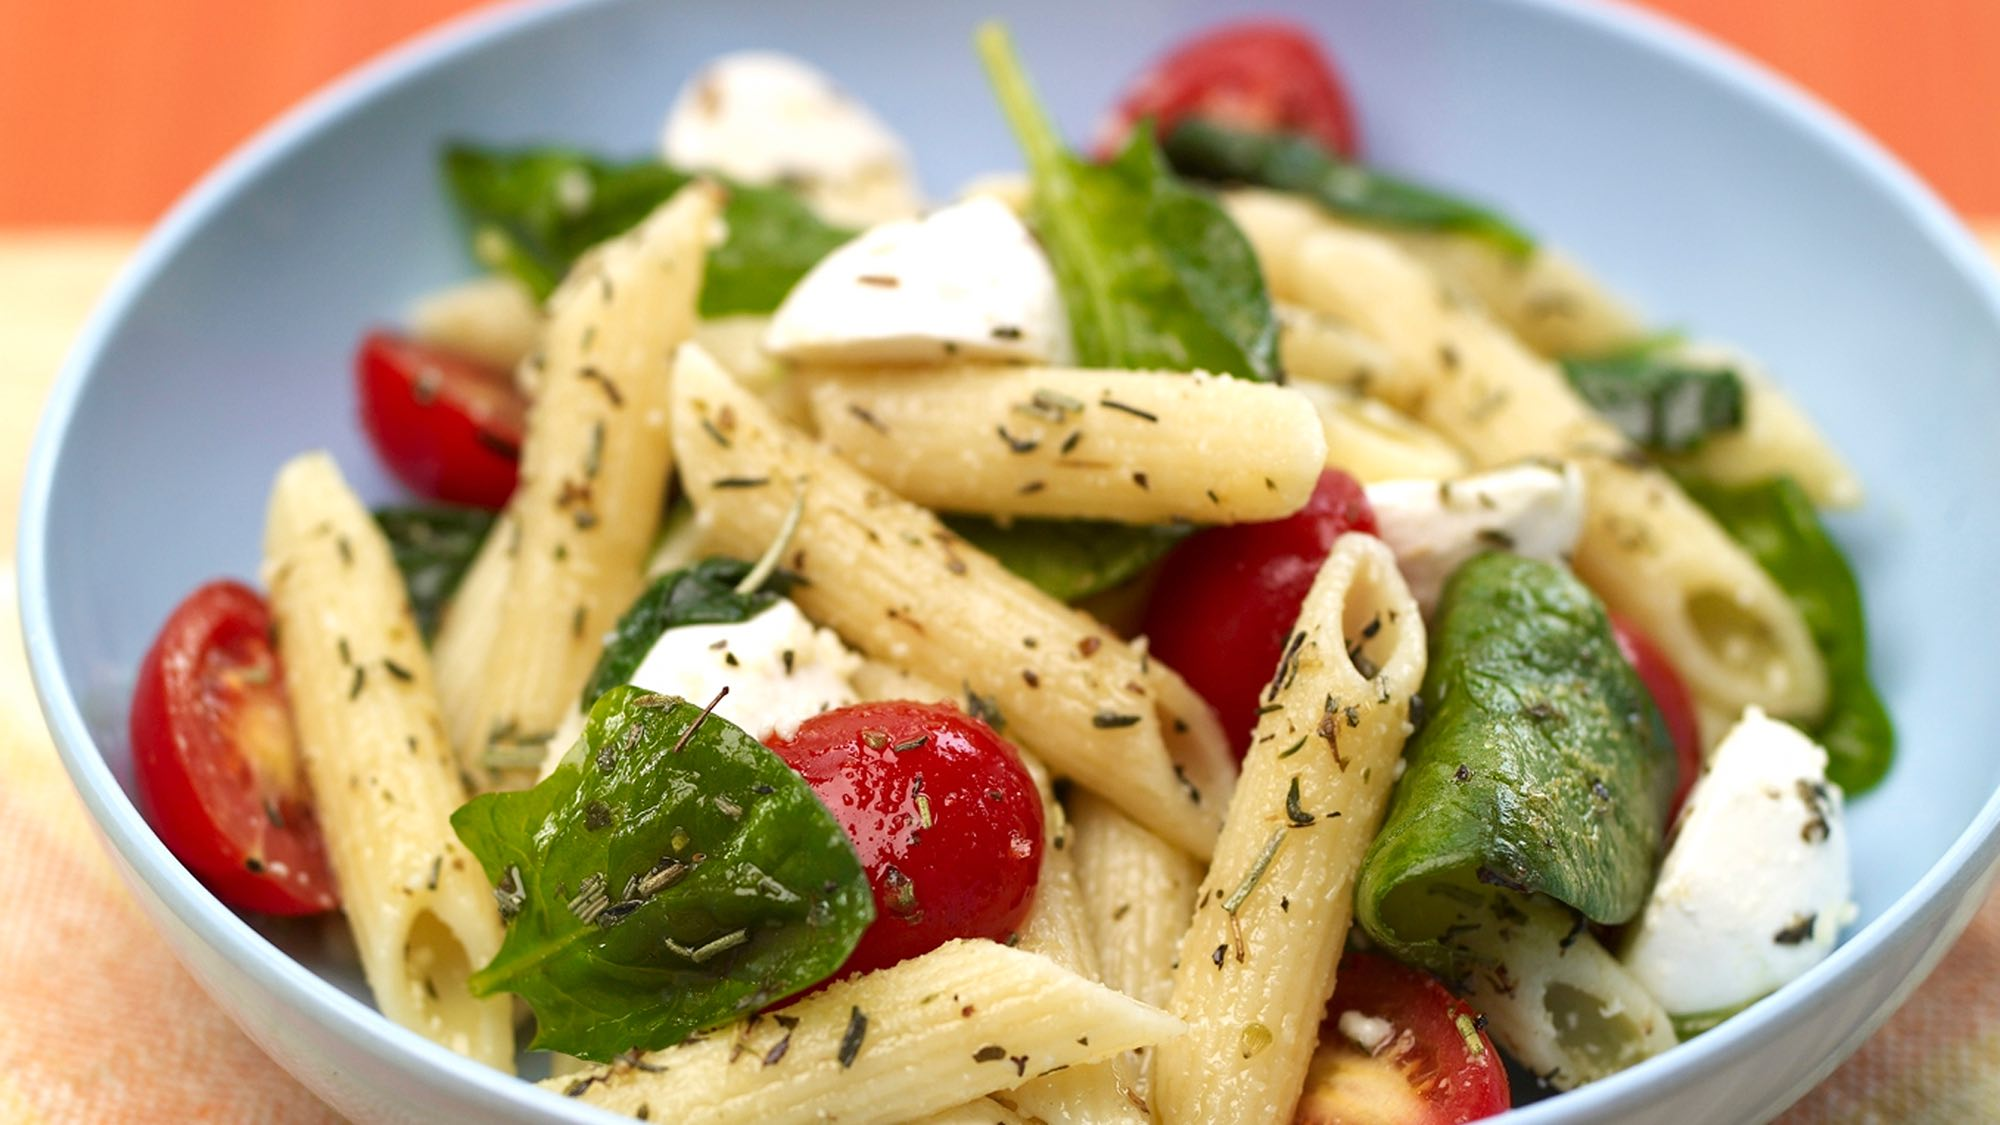 McCormick Penne Pasta Salad with Spinach and Tomatoes